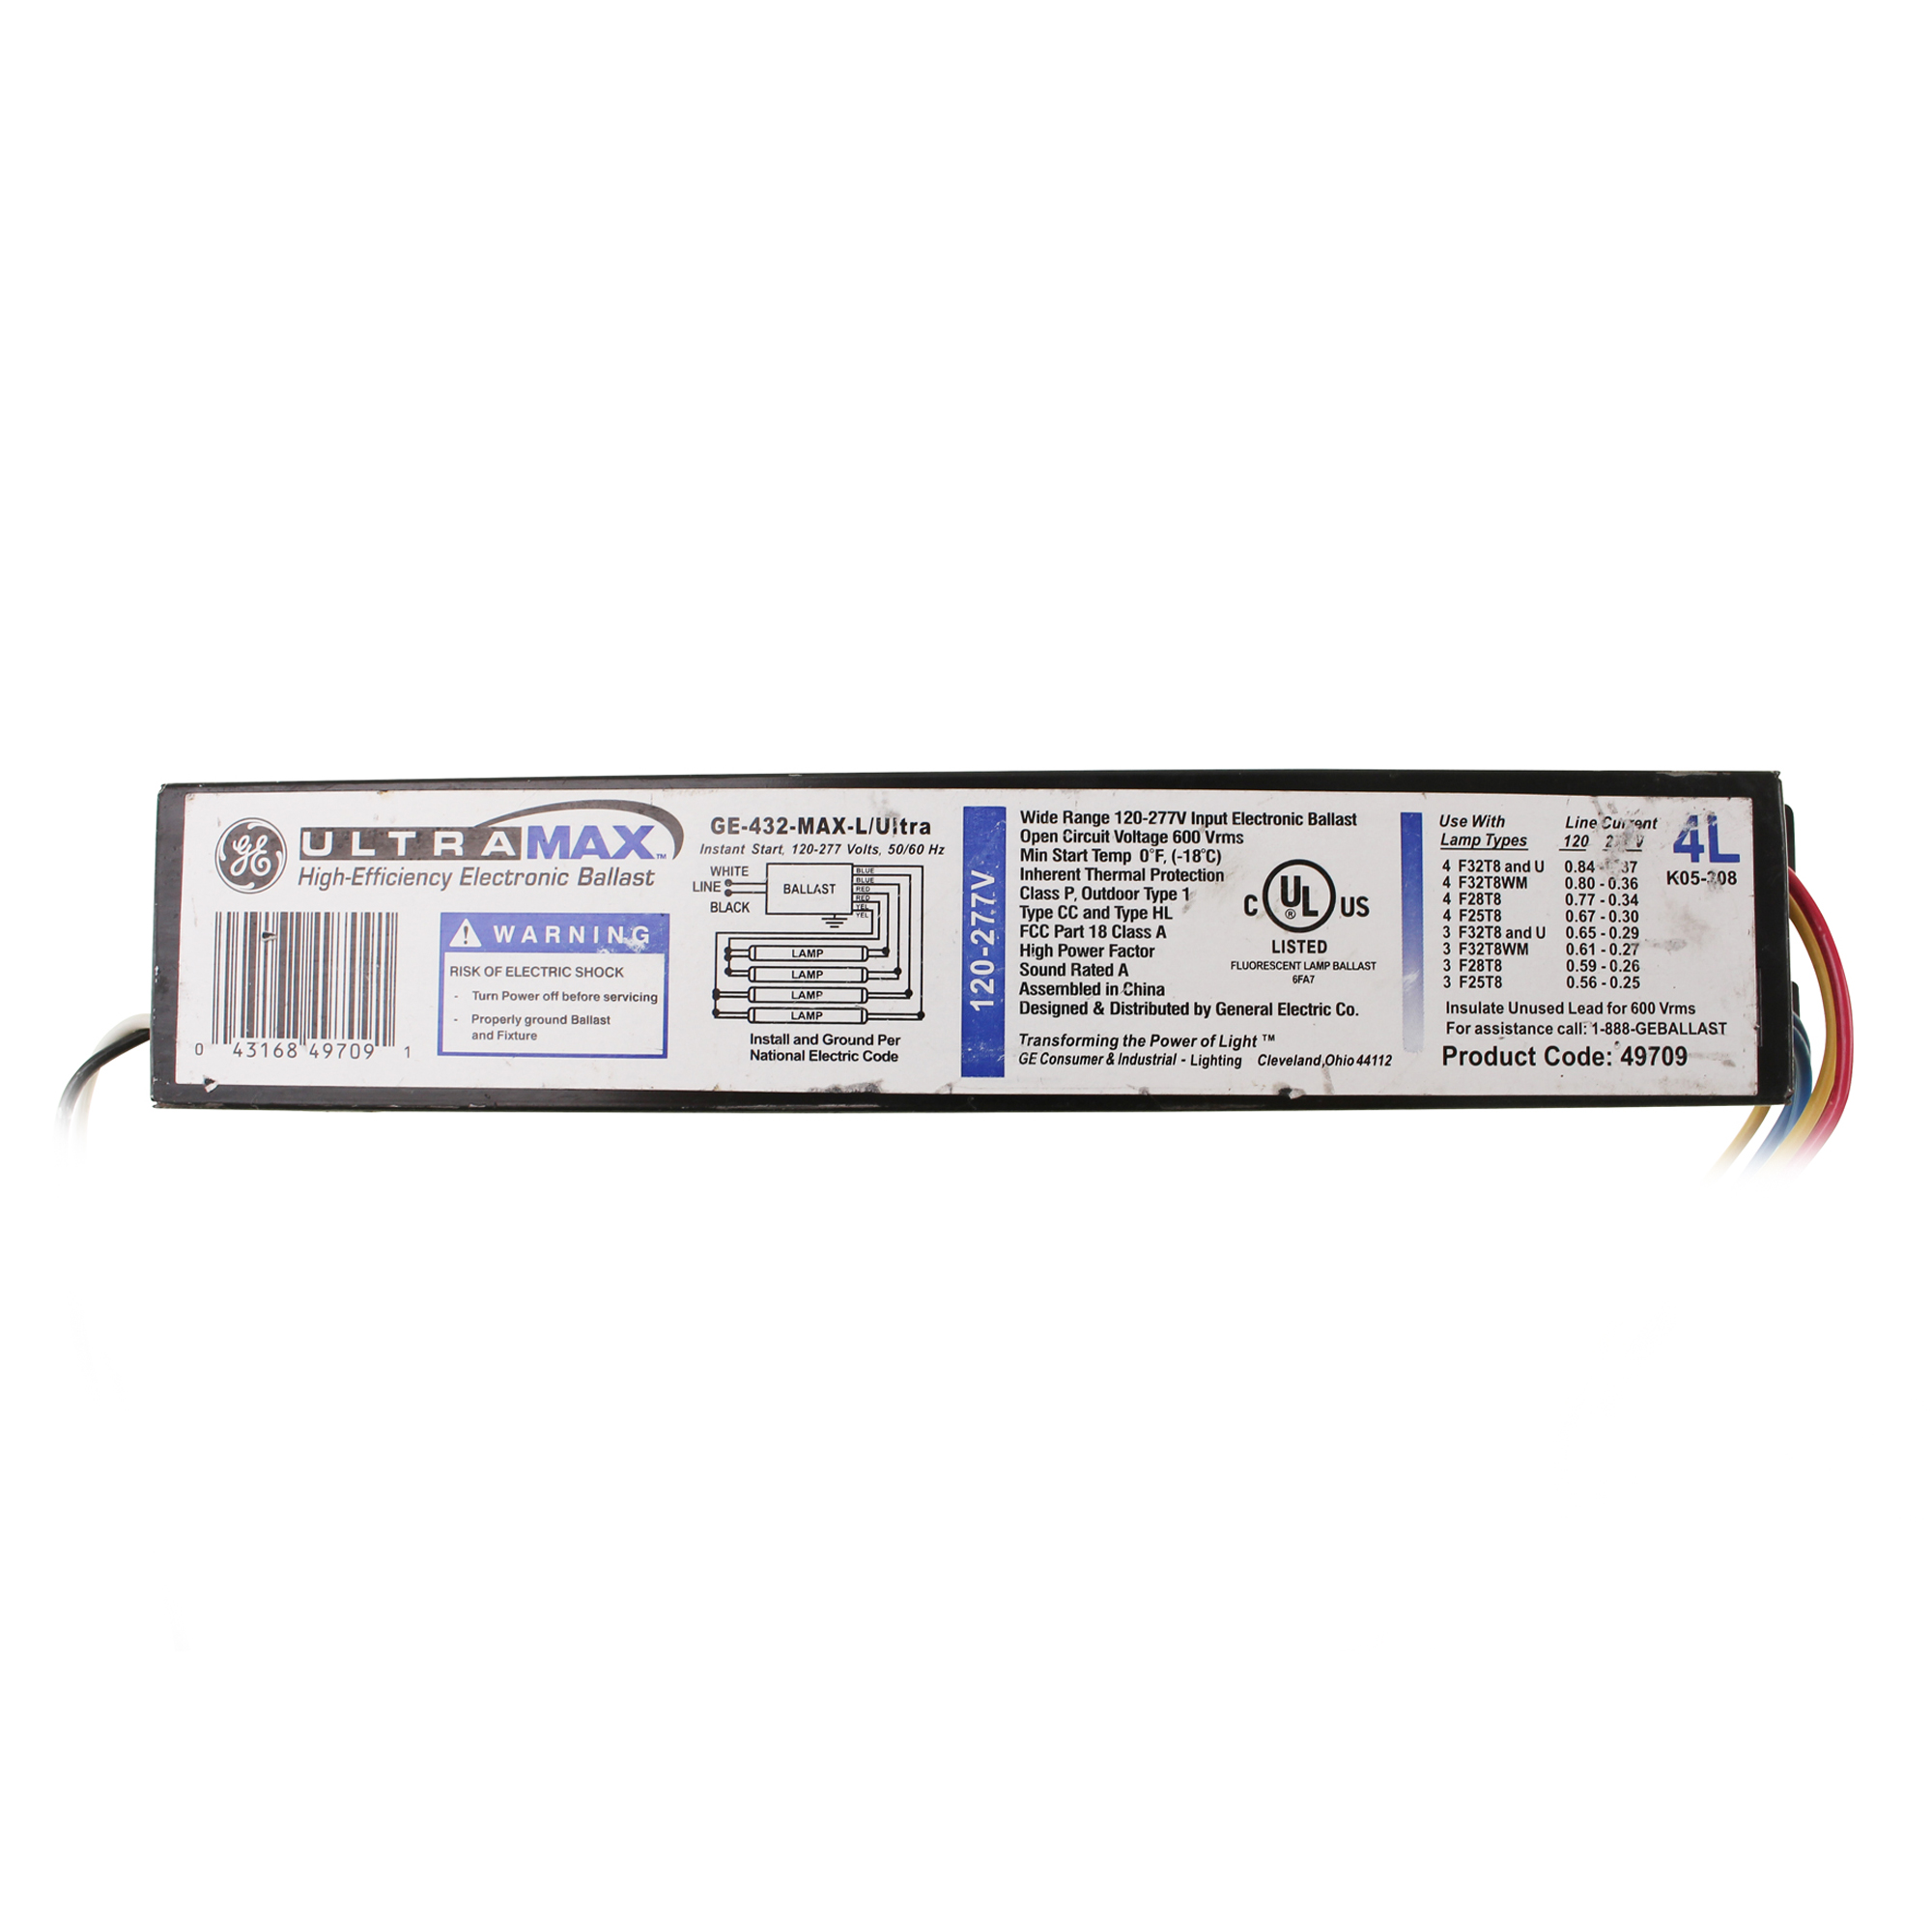 Ge 432 Max L Ultra Lmpara Fluorescente Lastre Electrnico 4 32 Voltage Output Electronic Ballast Wiring Diagram 277v This Auction Is For 1 Fluorescent Lamp 32w T8 120